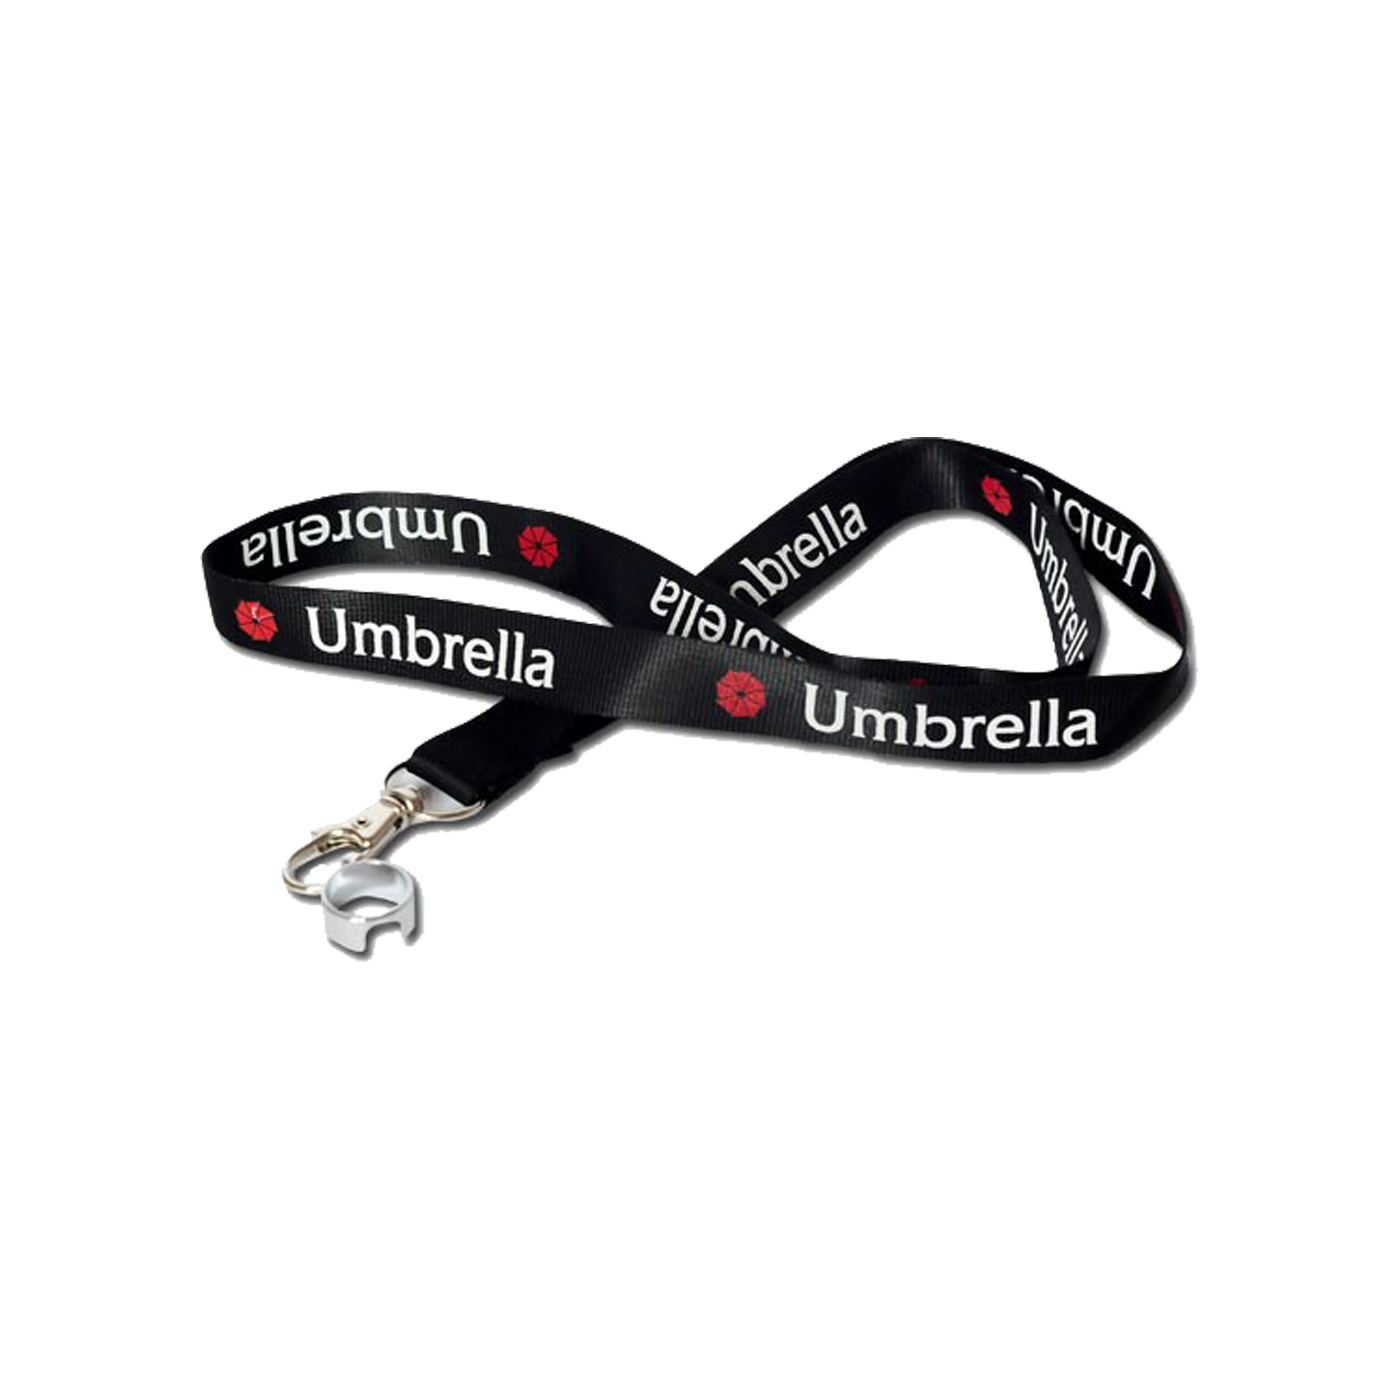 Umbrella - Ogrlica Prestige